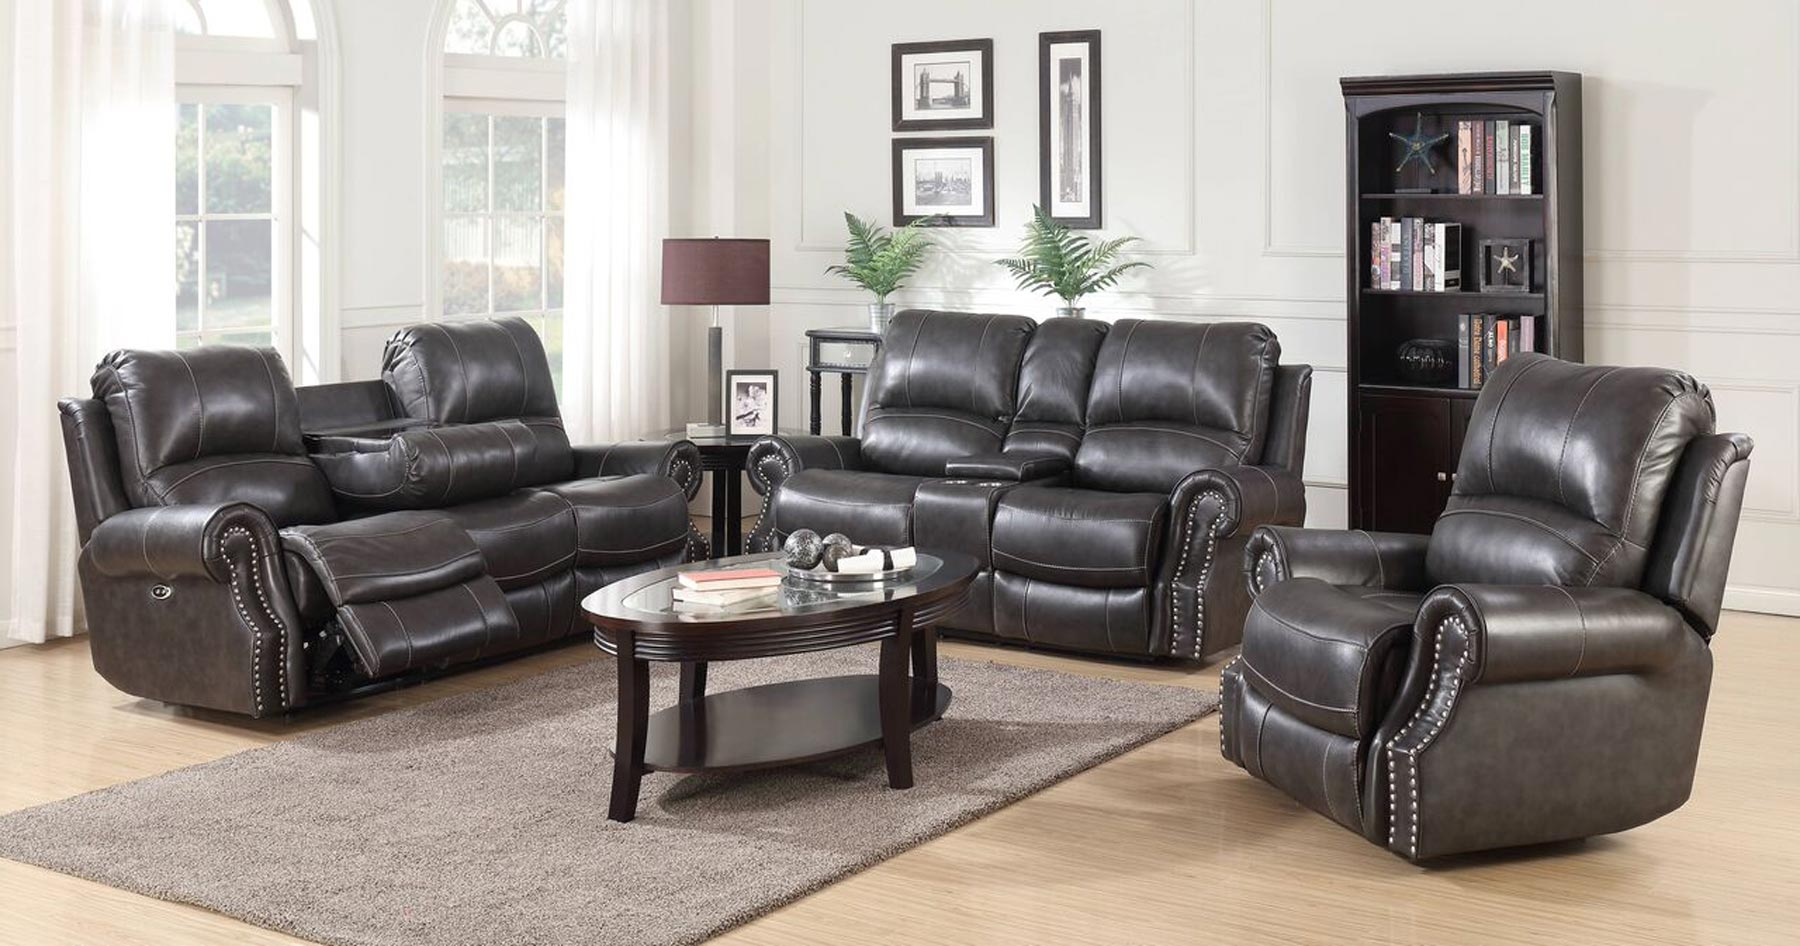 Emerson 3 piece living room set gonzalez furniture for 3 piece living room furniture